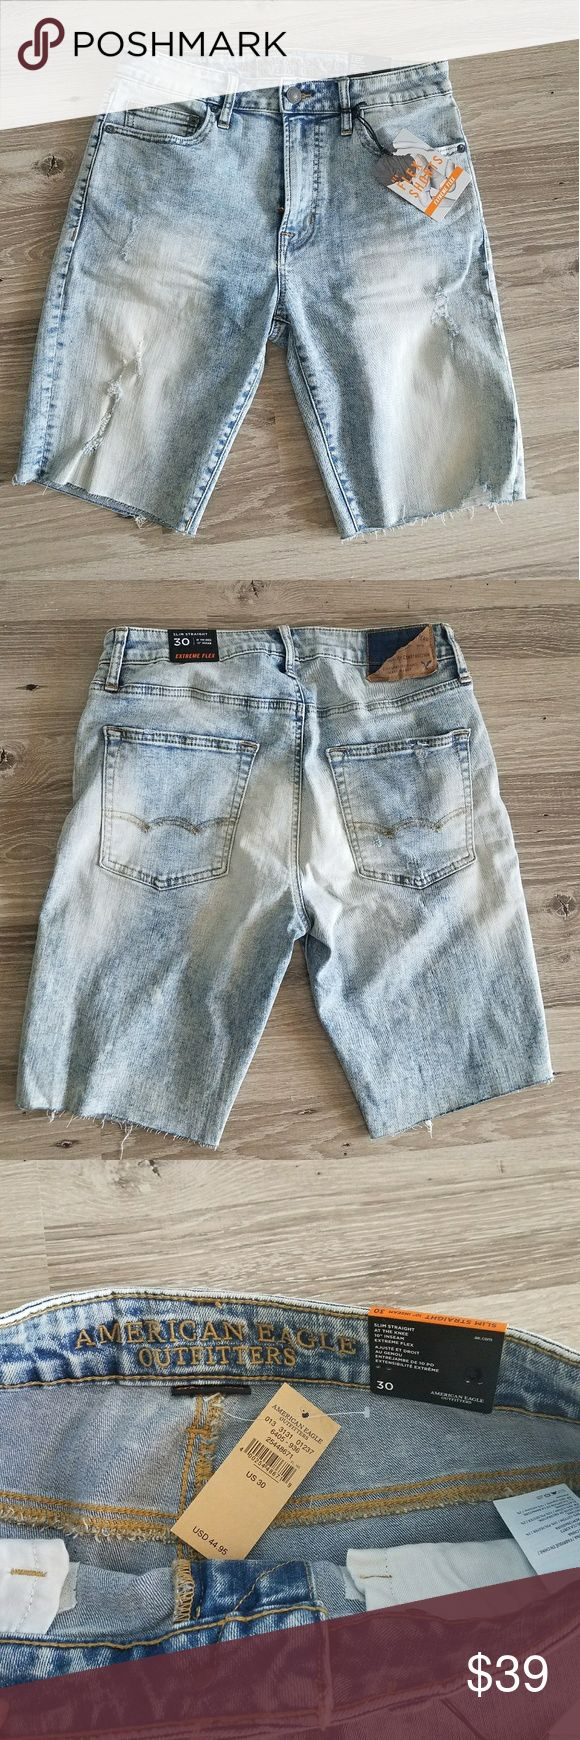 """American Eagle MEN's denim slim straight shorts Brand New from American Eagle store, unfortunately my husband didn't not like the fit and now it's too late to return. All TAGS still on!  Distressed light wash jeans!  Size 30 waist slim straight 10"""" inseam at the knees. American Eagle Outfitters Shorts Jean Shorts"""